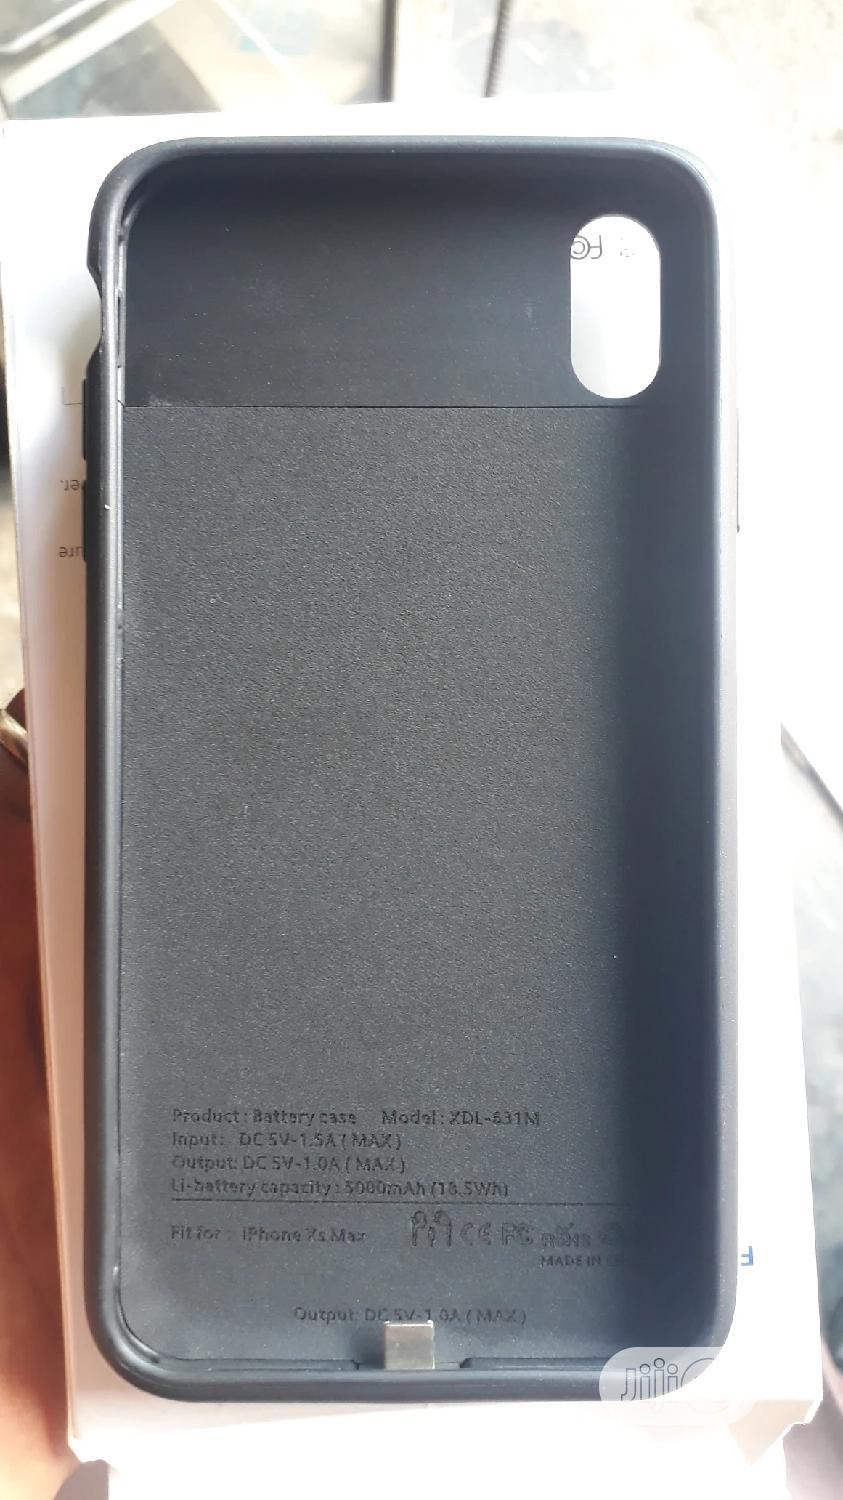 iPhone Xs Power Case Battery | Accessories for Mobile Phones & Tablets for sale in Ikeja, Lagos State, Nigeria